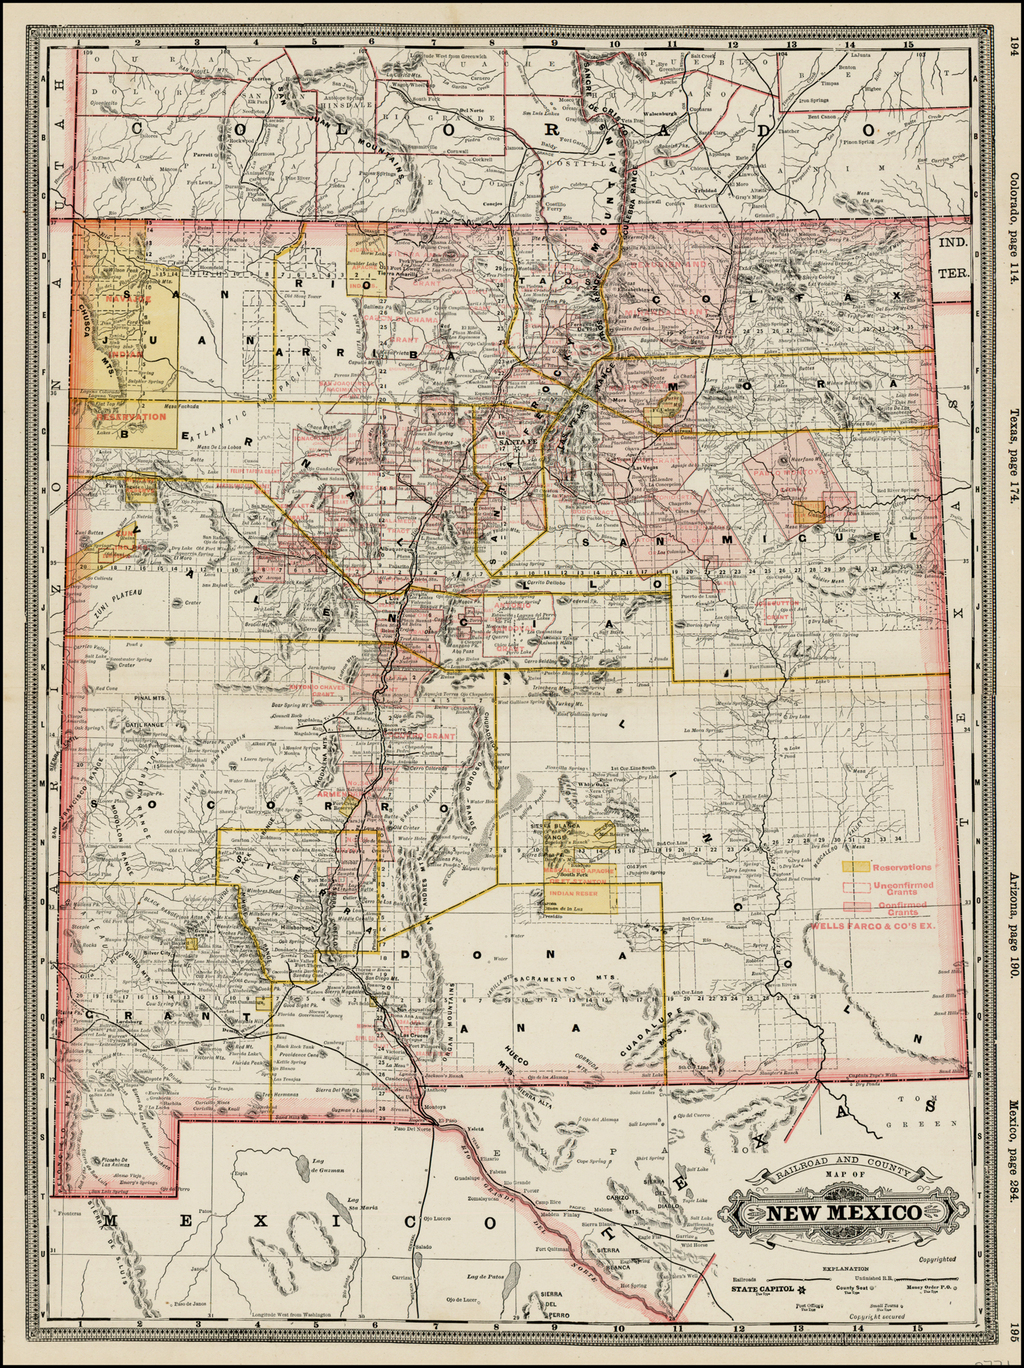 Railroad and County Map of New Mexico By George F. Cram